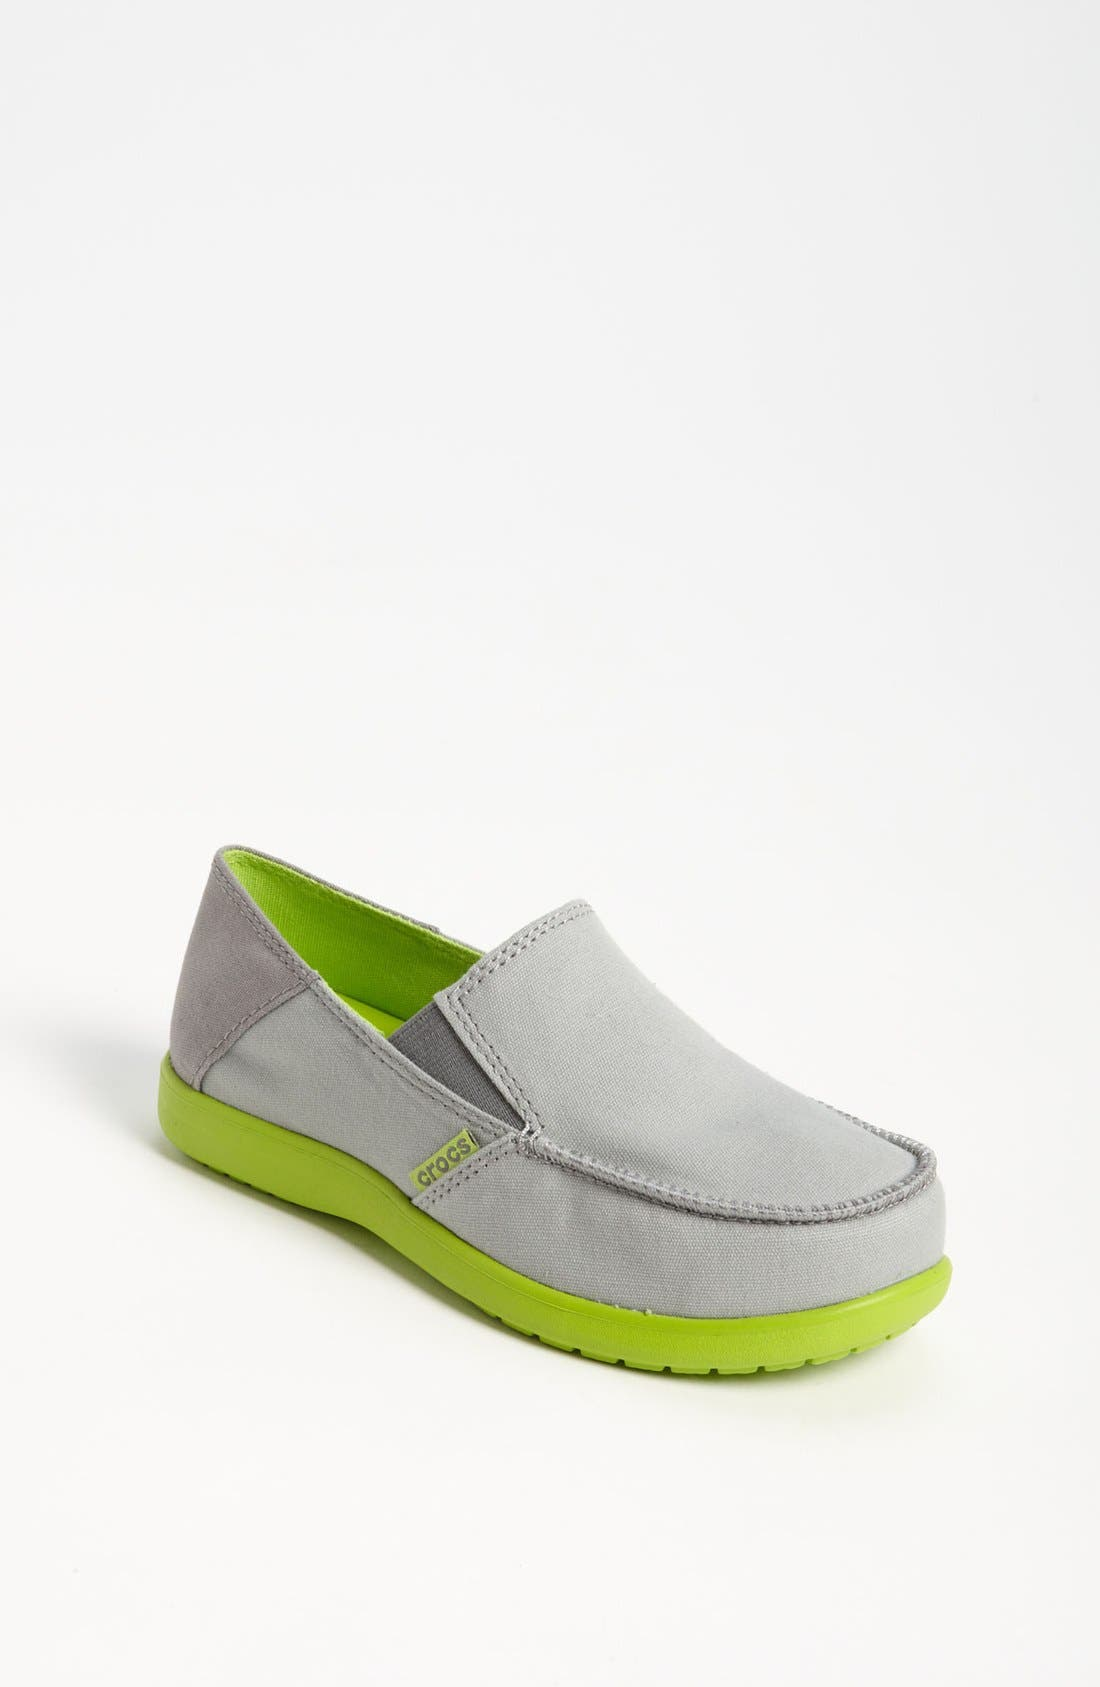 Main Image - CROCS™ 'Santa Cruz' Loafer (Little Kid & Big Kid)